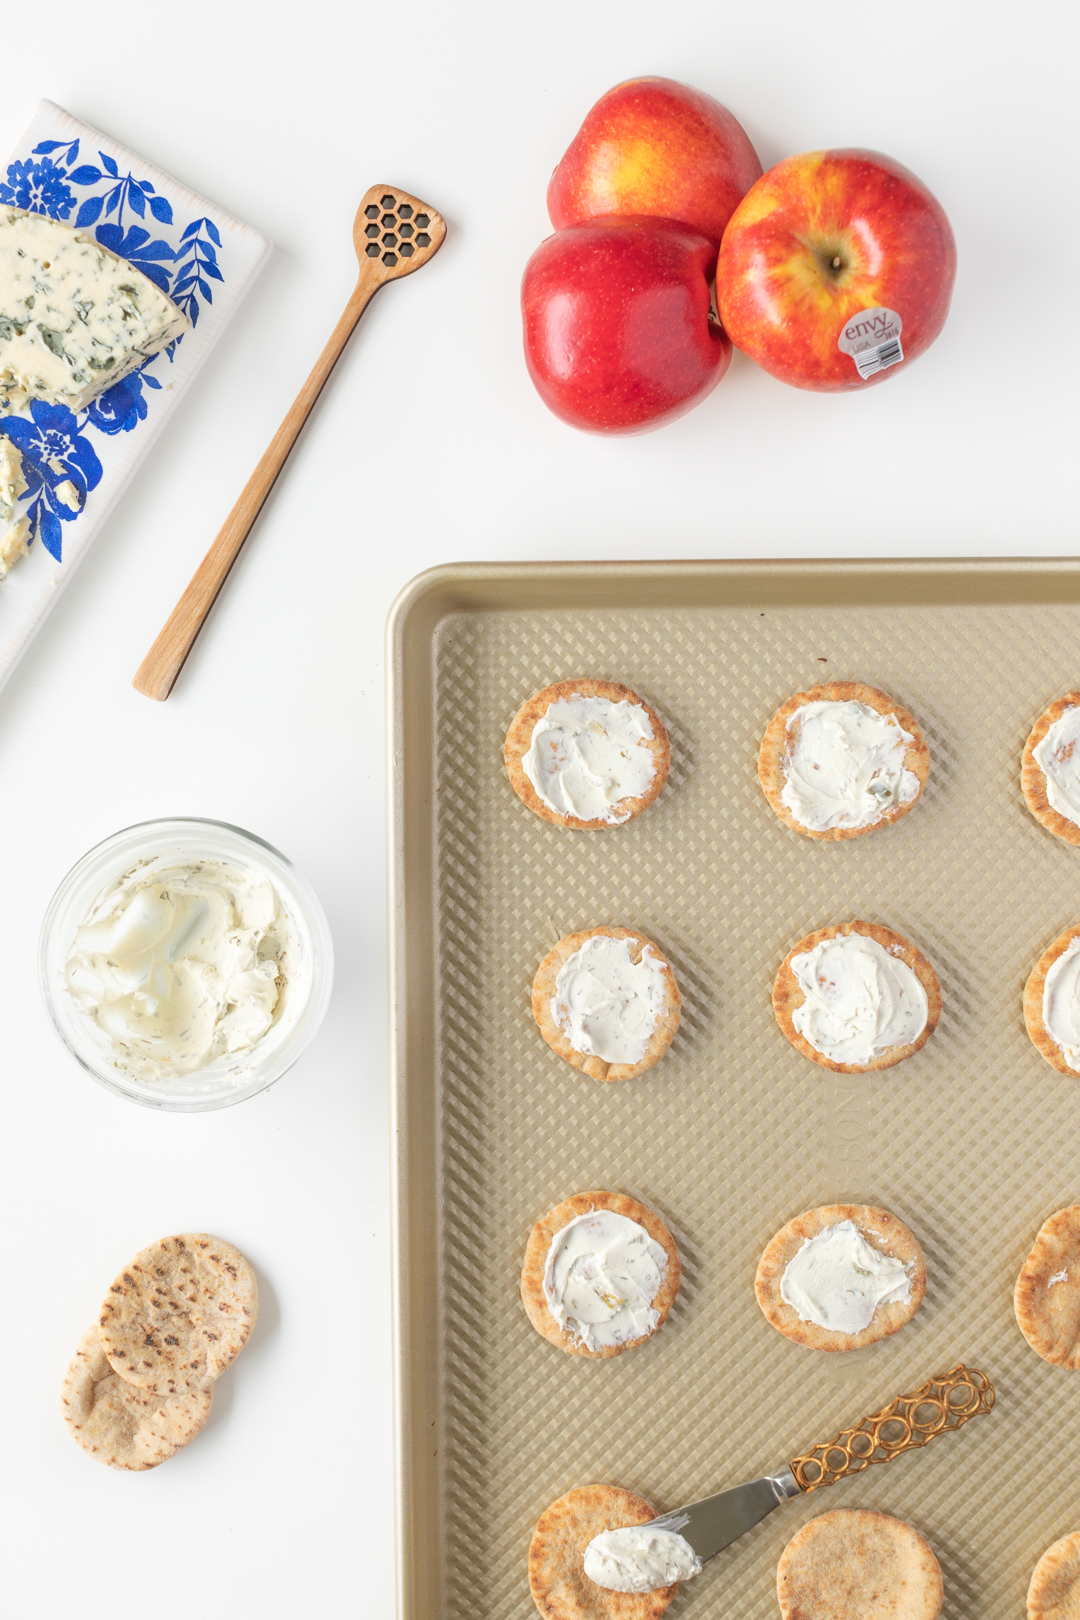 Cream cheese spread over mini pitas